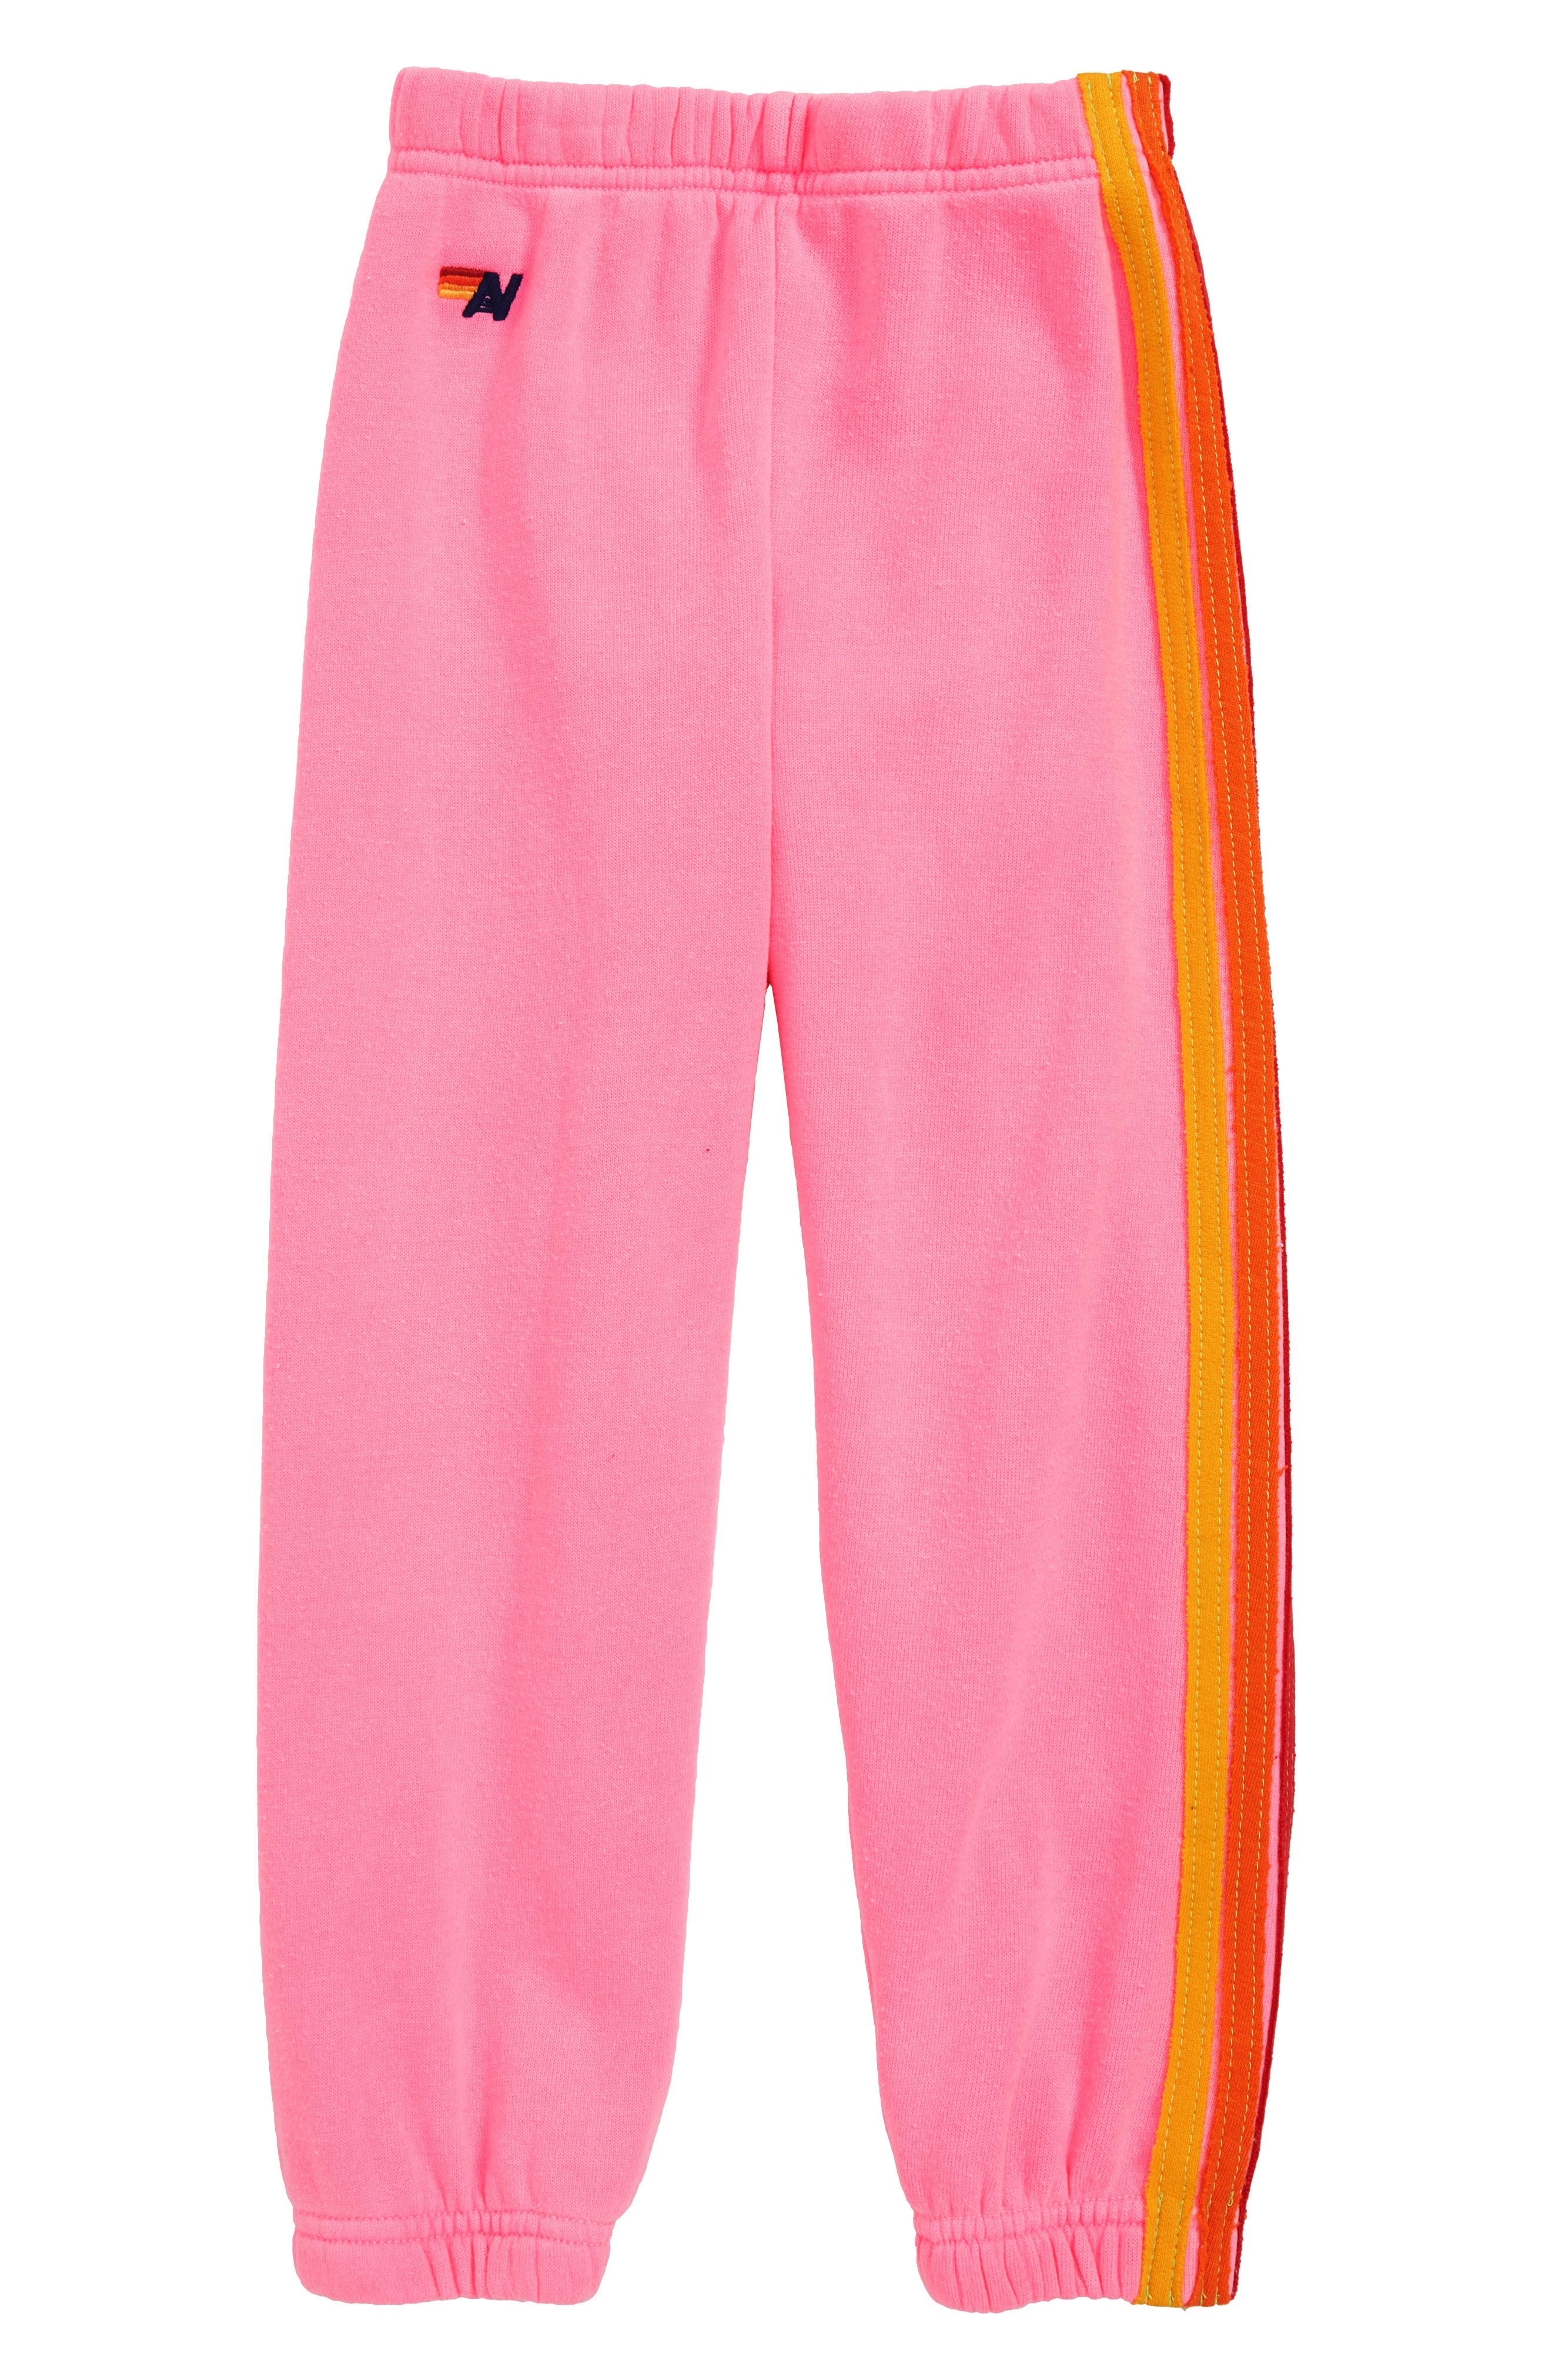 5-Stripe Sweatpants,                             Main thumbnail 1, color,                             NEON PINK